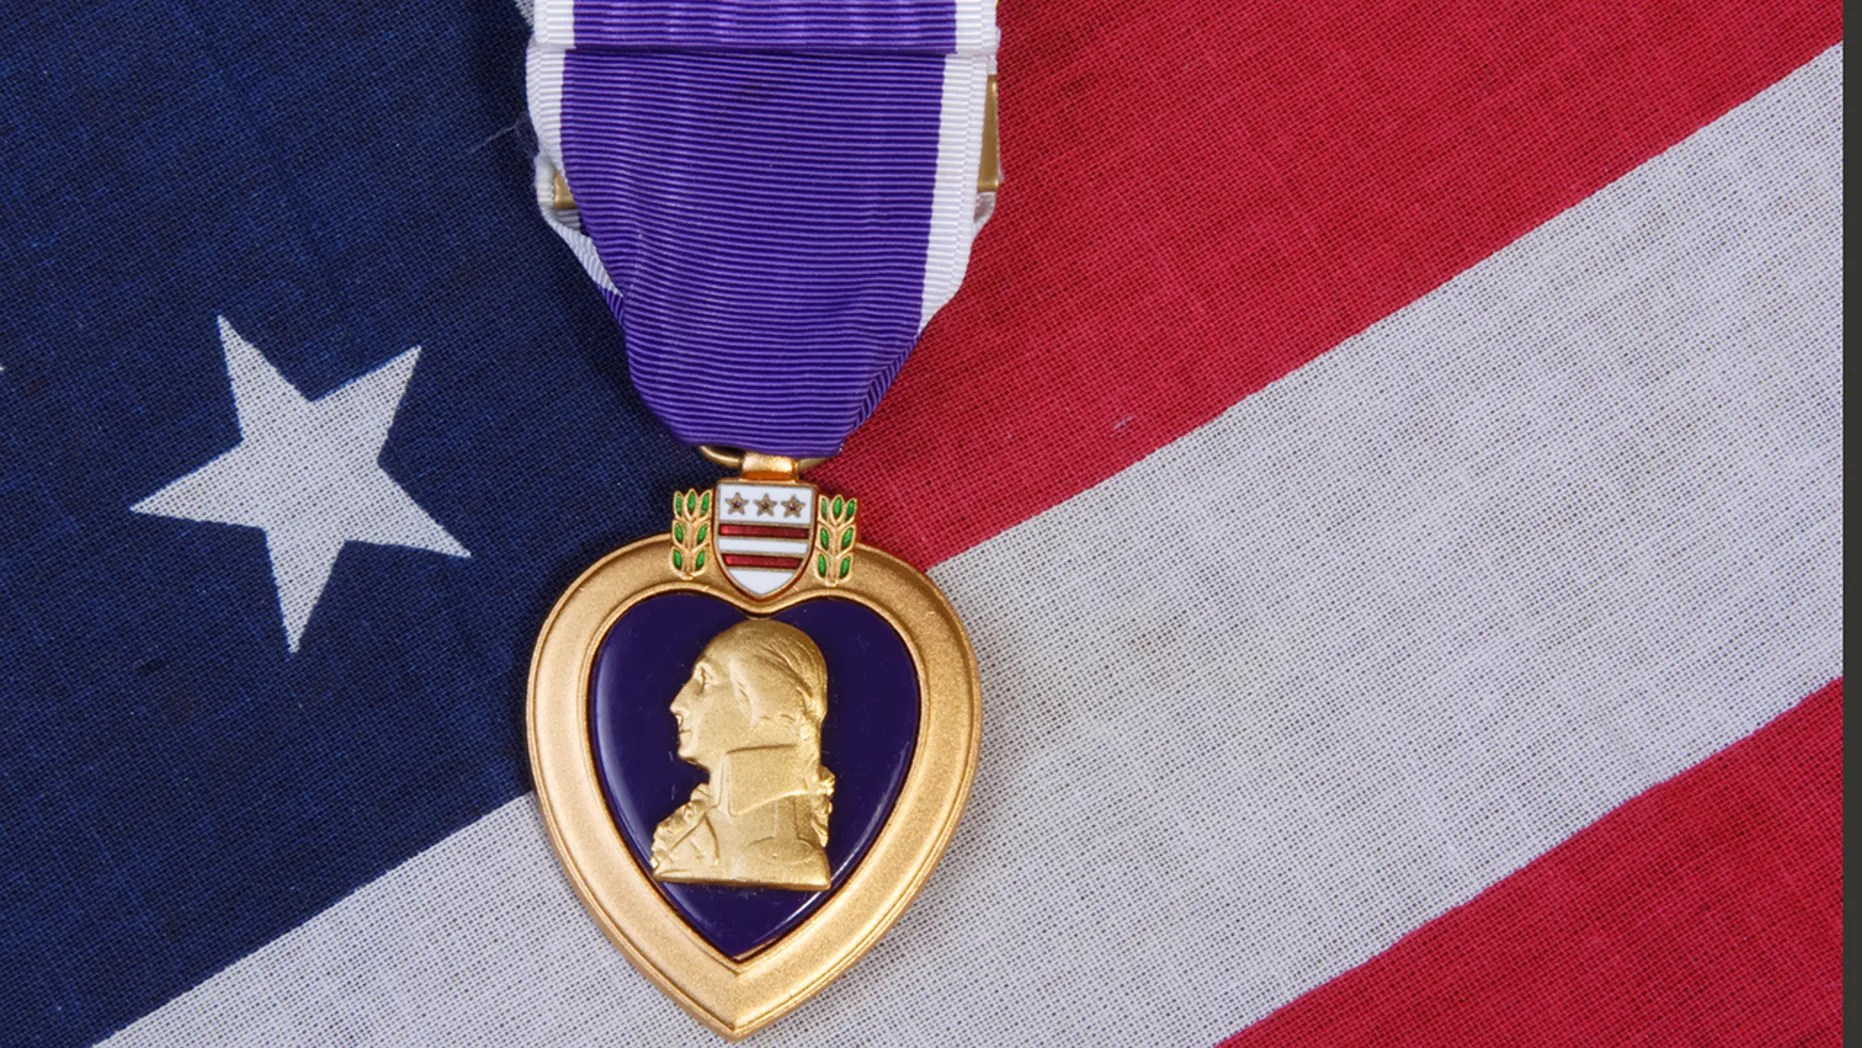 Cpl. Francis Byrne, a 94-year-old World War II veteran who is battling terminal cancer, will finally receive a Purple Heart. (istock)